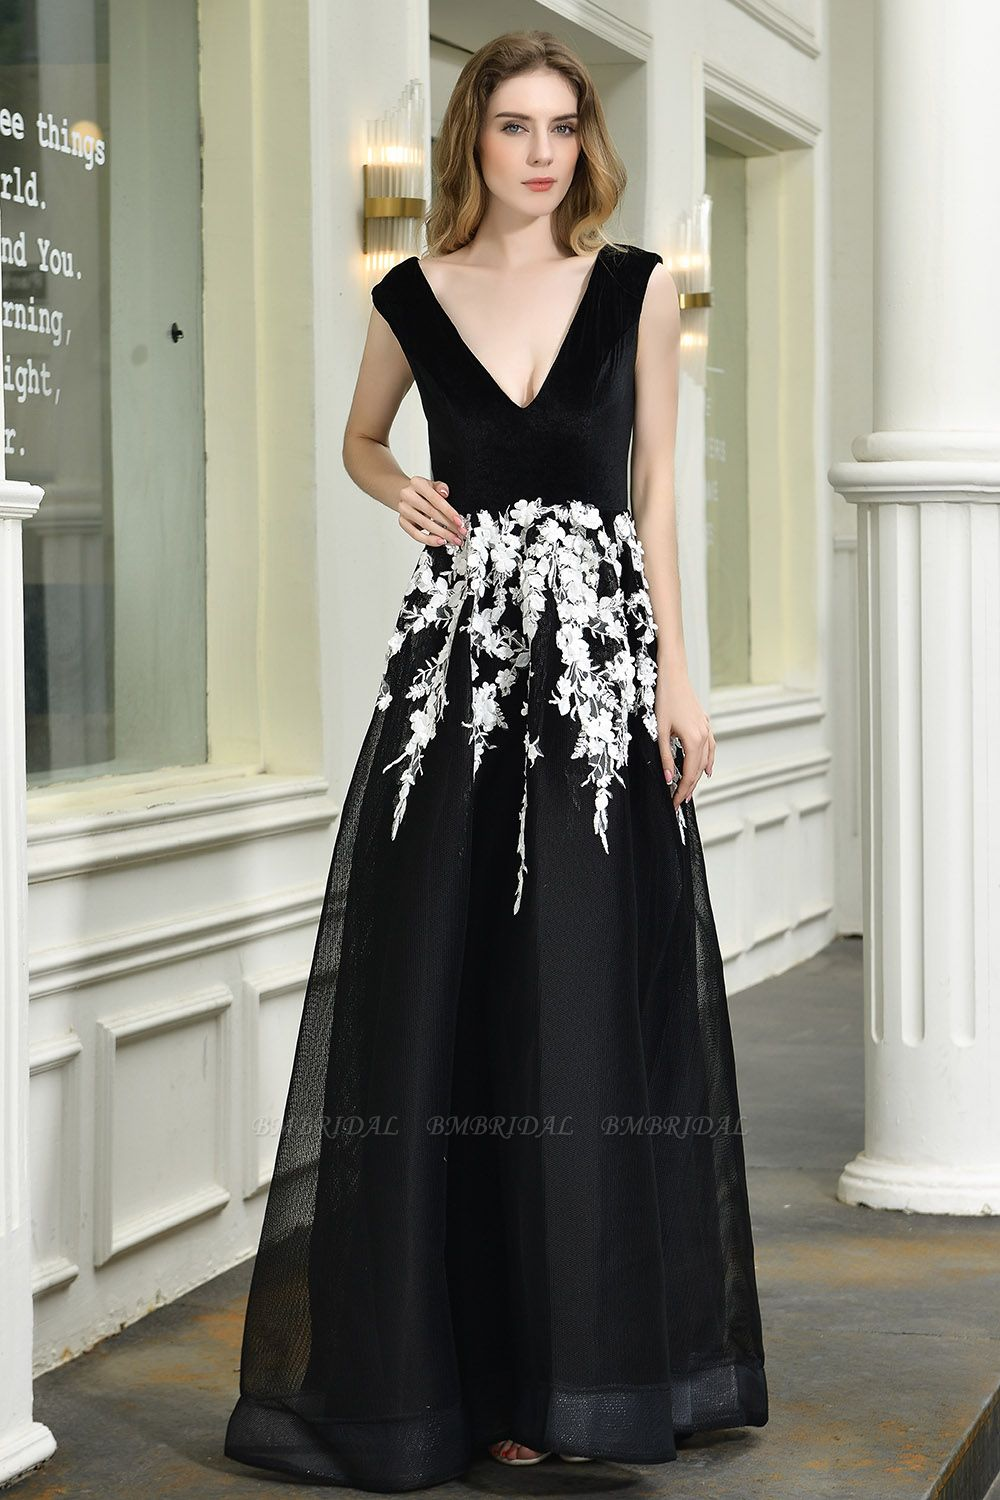 BMbridal Sexy Black Long Prom Dress V-Neck Evening Gowns With Lace Appliques